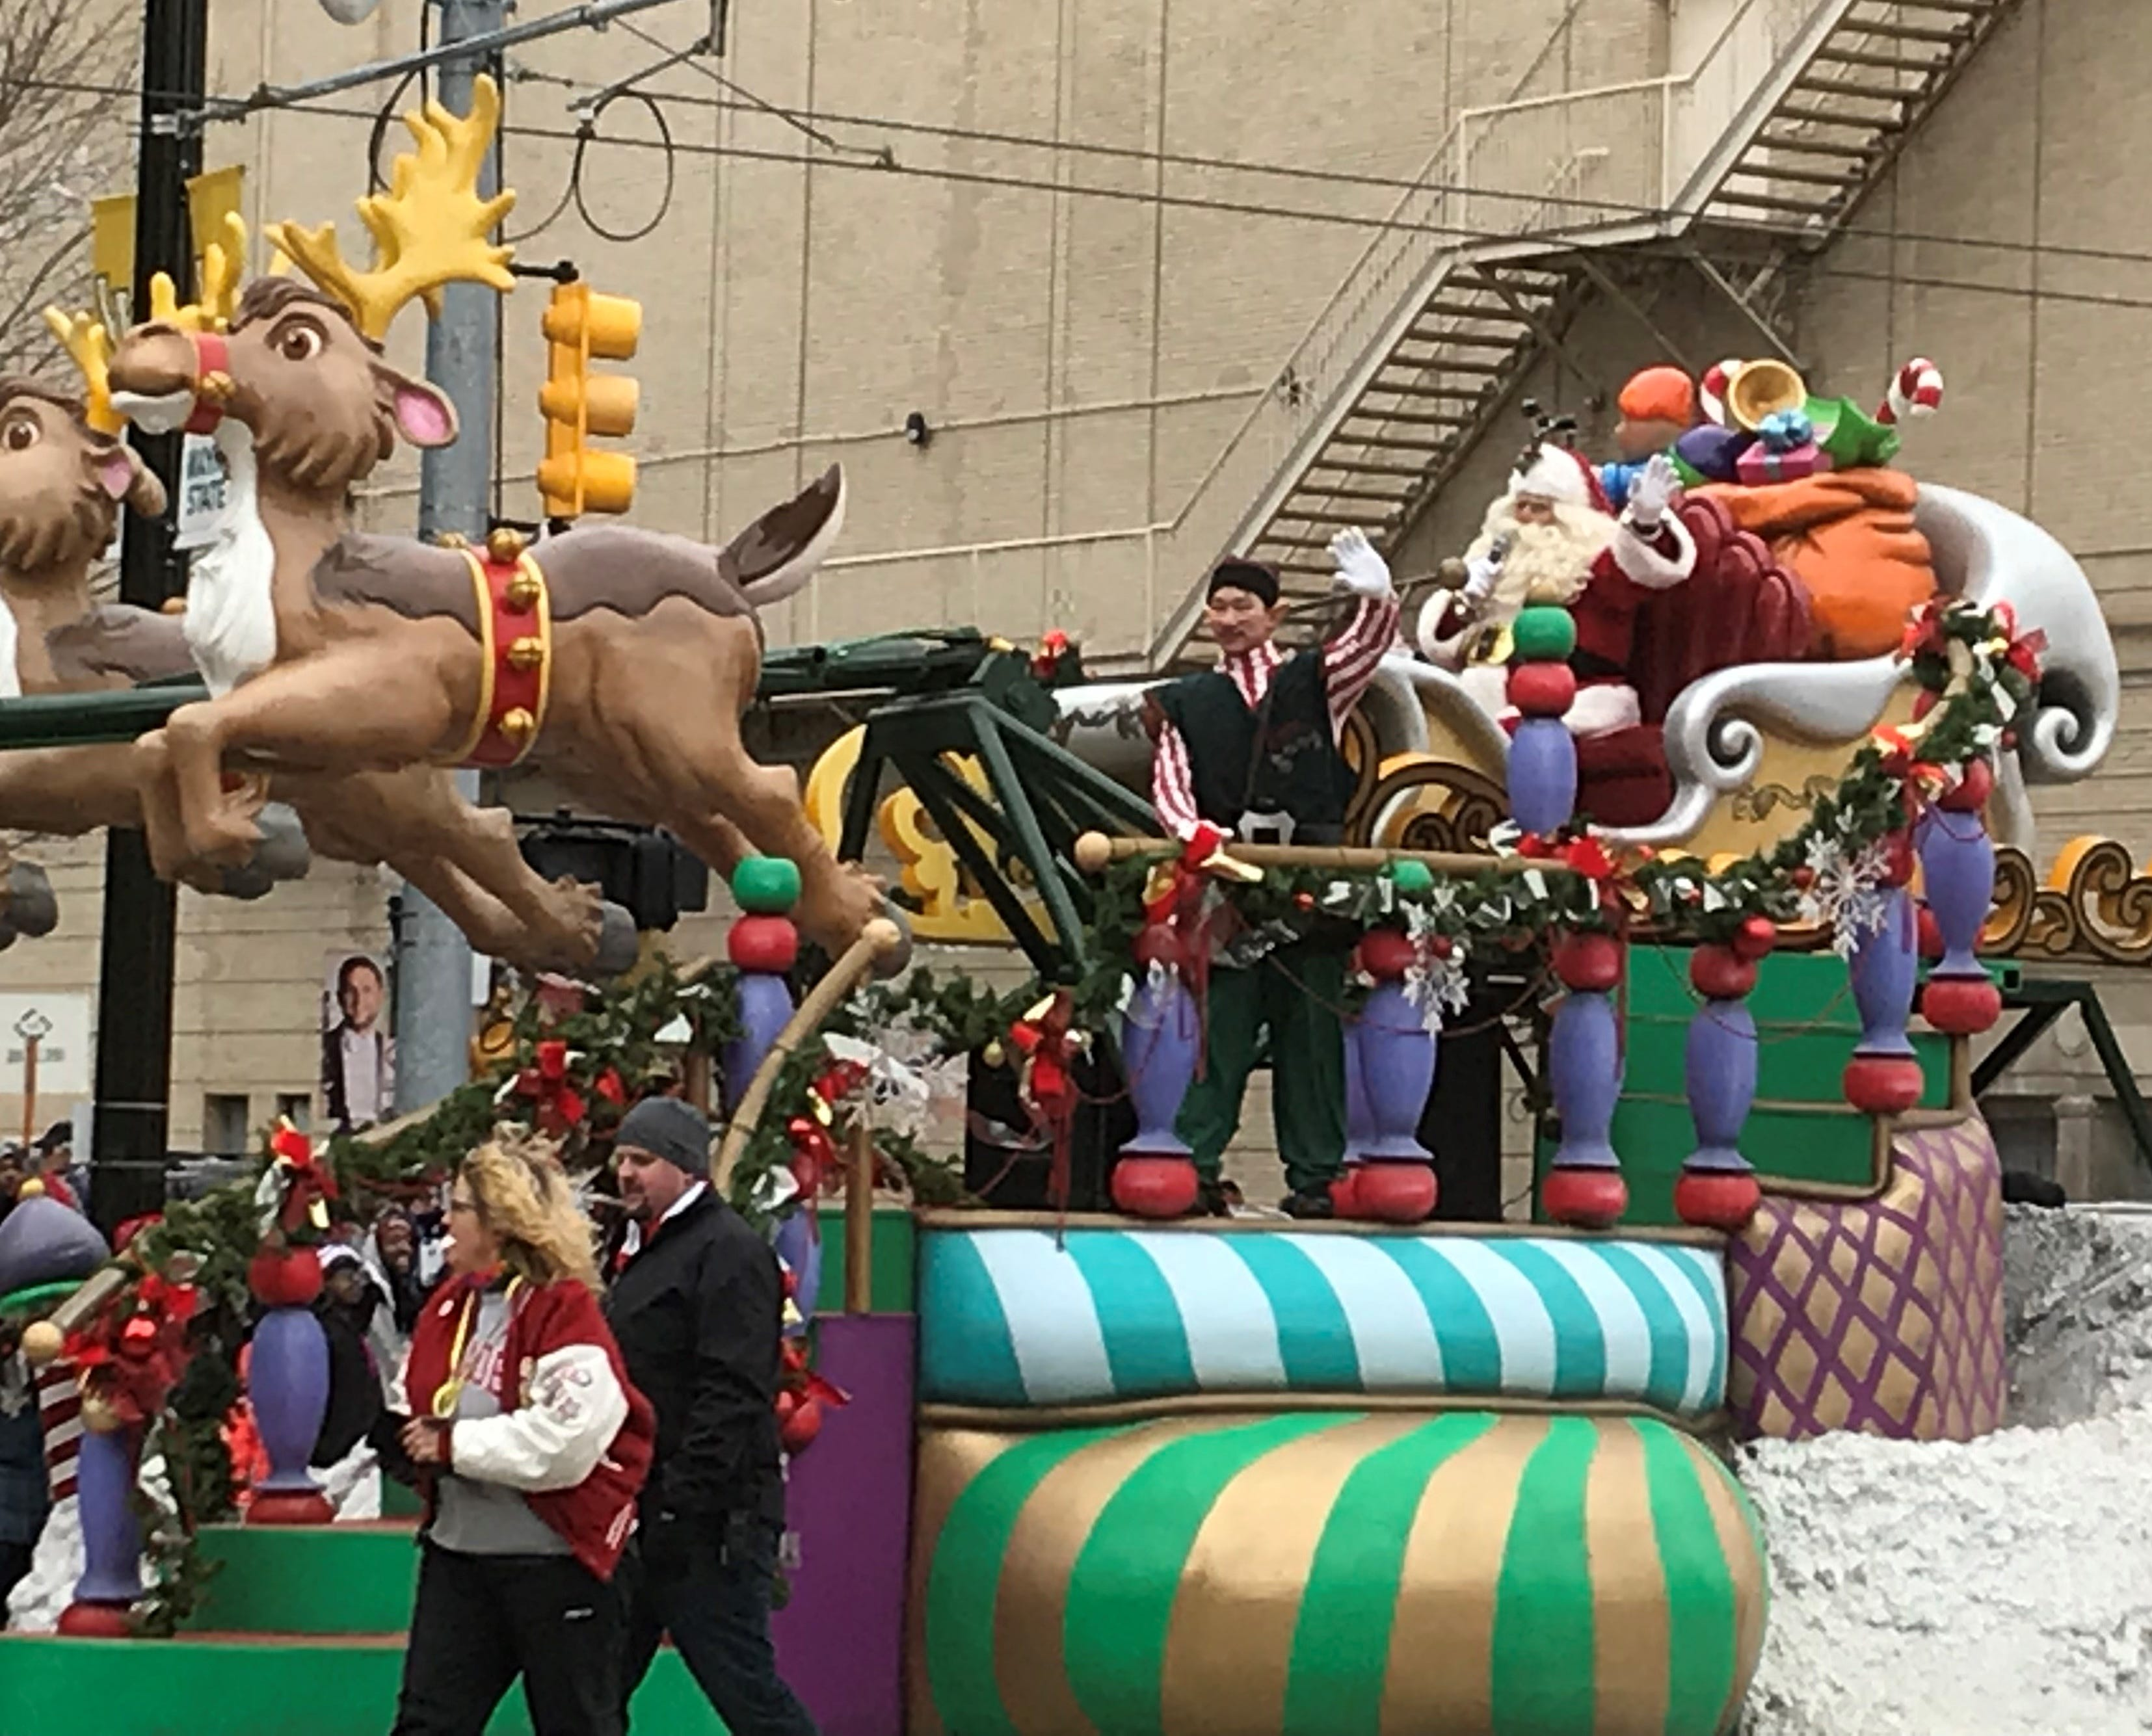 Santa Claus gets a float of his own as he heads south on Woodward to officially start the holiday season.